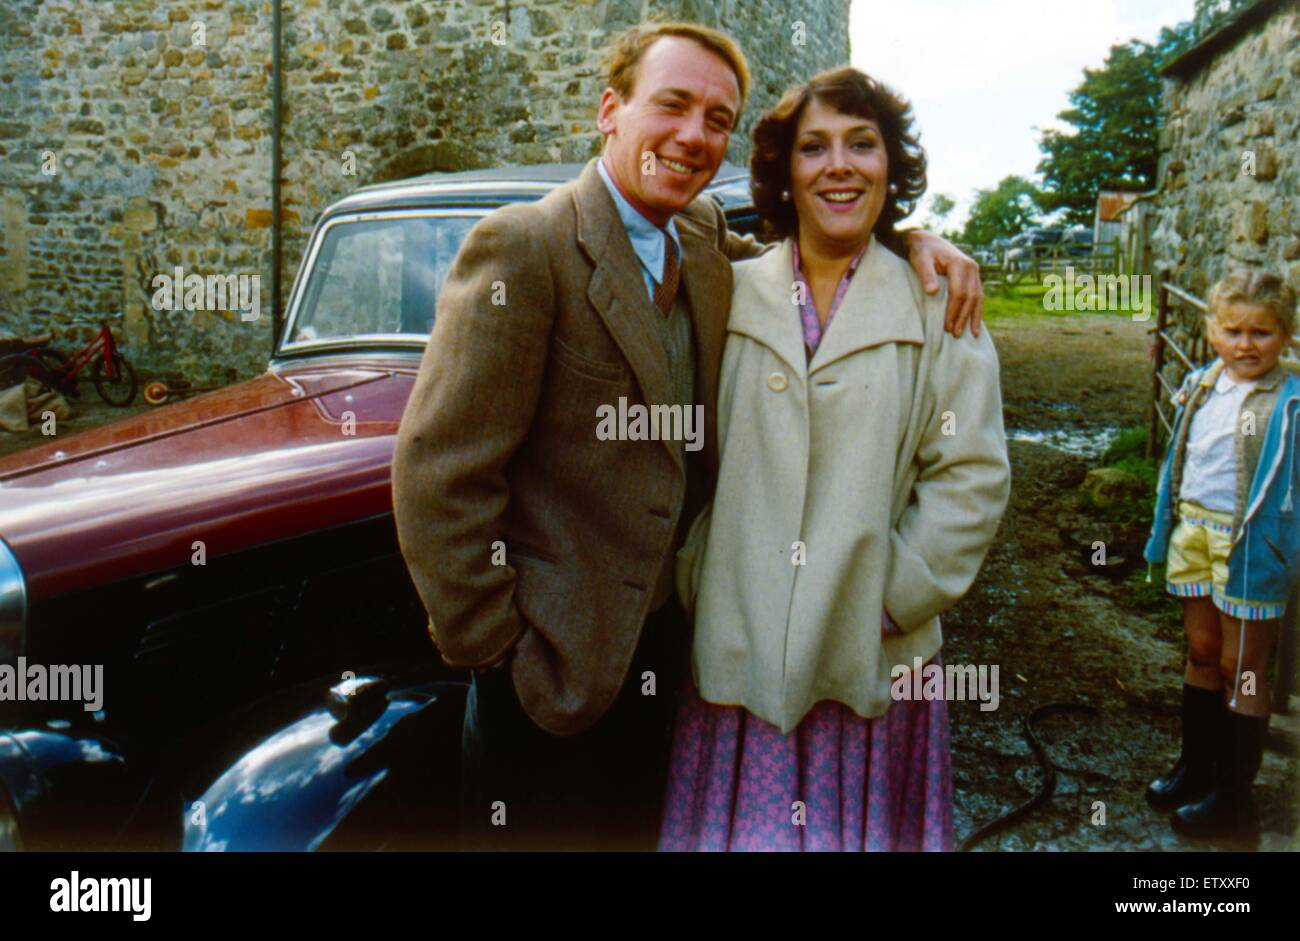 'All Creatures Great and Small' cast members Lynda Bellingham and Christopher Timothy.  January 1988. - Stock Image